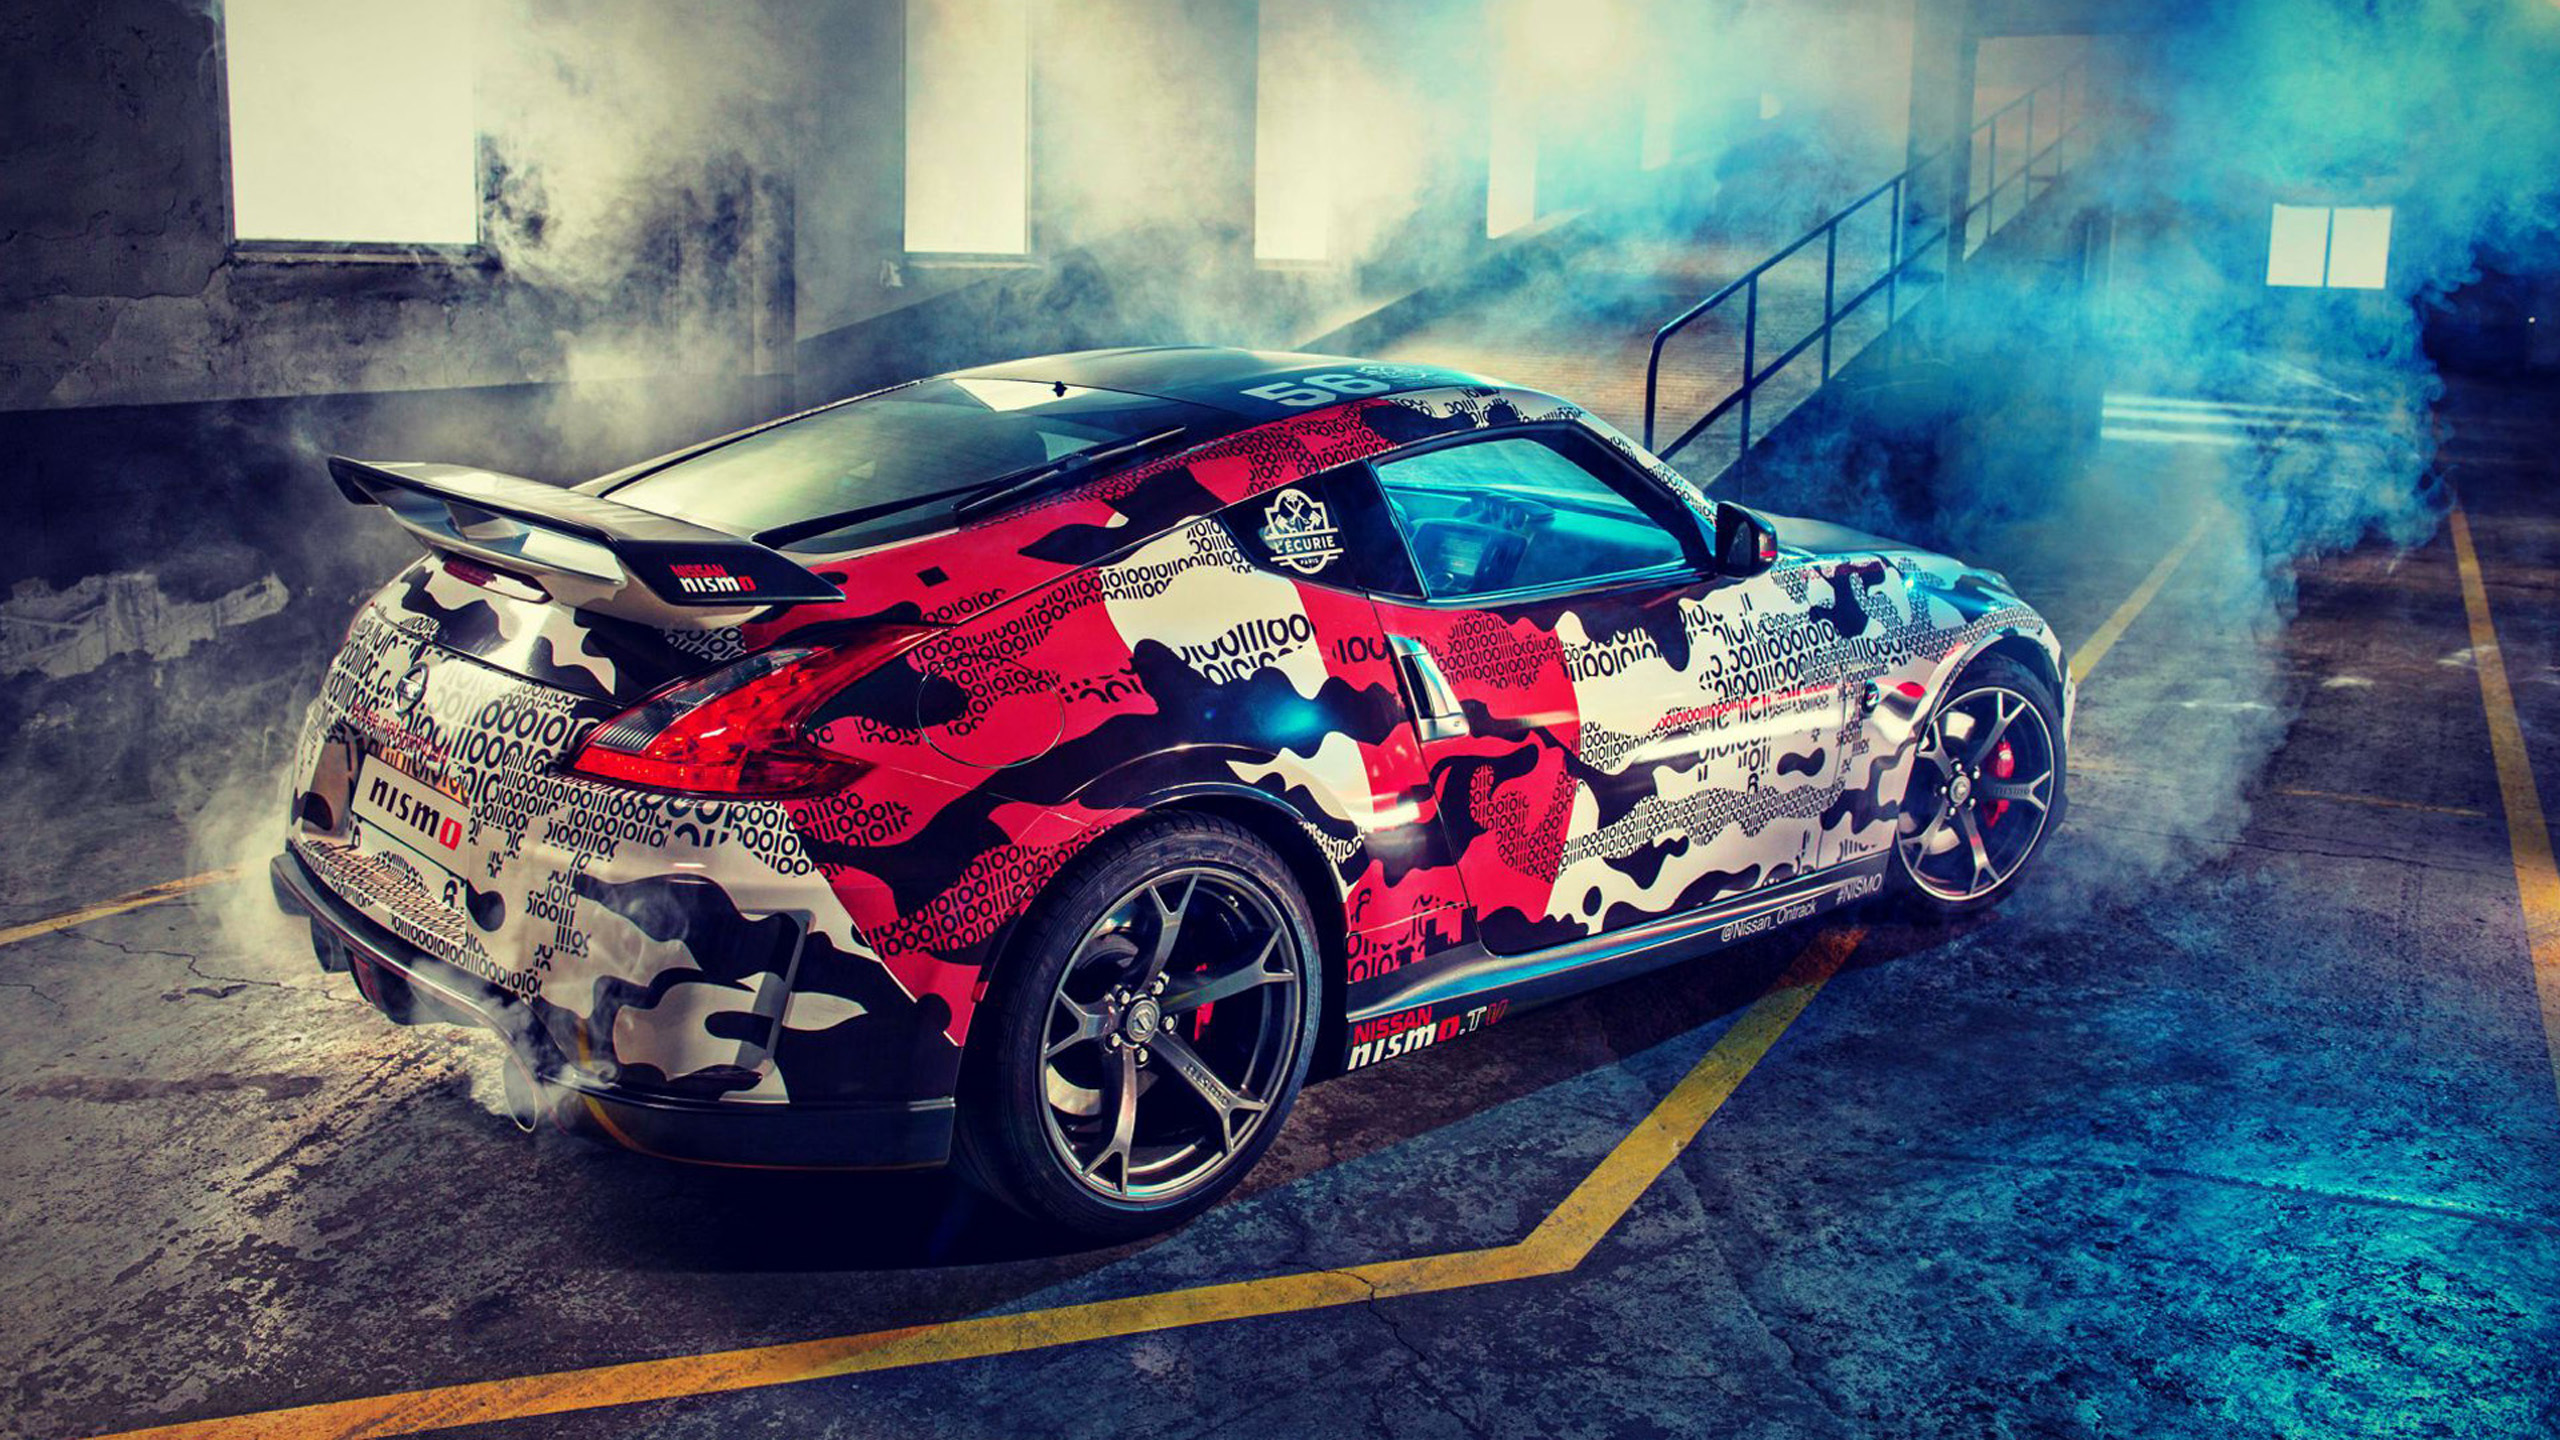 The Yellow Wallpaper Symbolism Quotes Download Hd Wallpapers Of Modified Cars Gallery